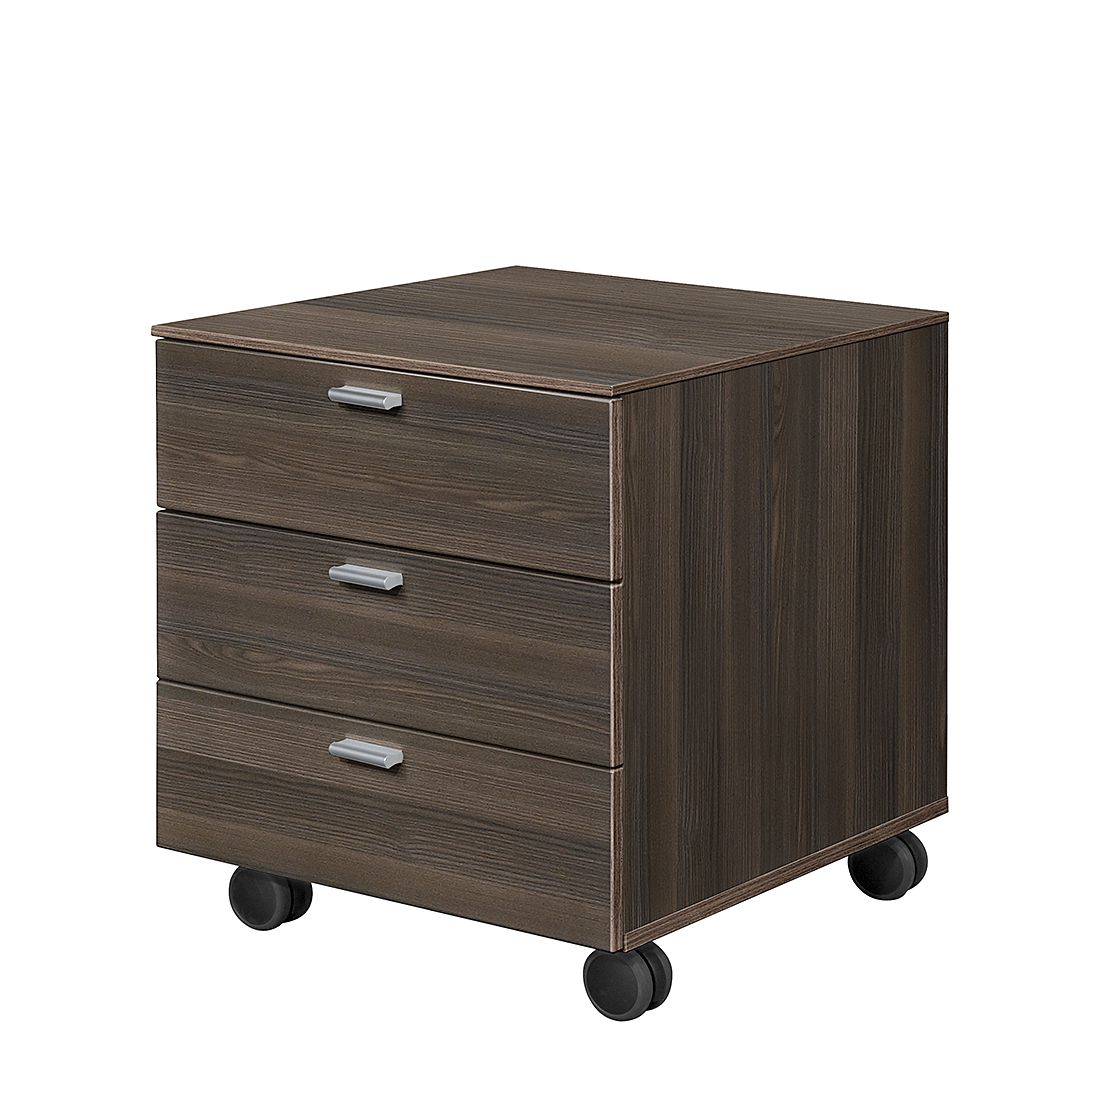 rollcontainer work 3 schubladen esche dunkel dekor. Black Bedroom Furniture Sets. Home Design Ideas